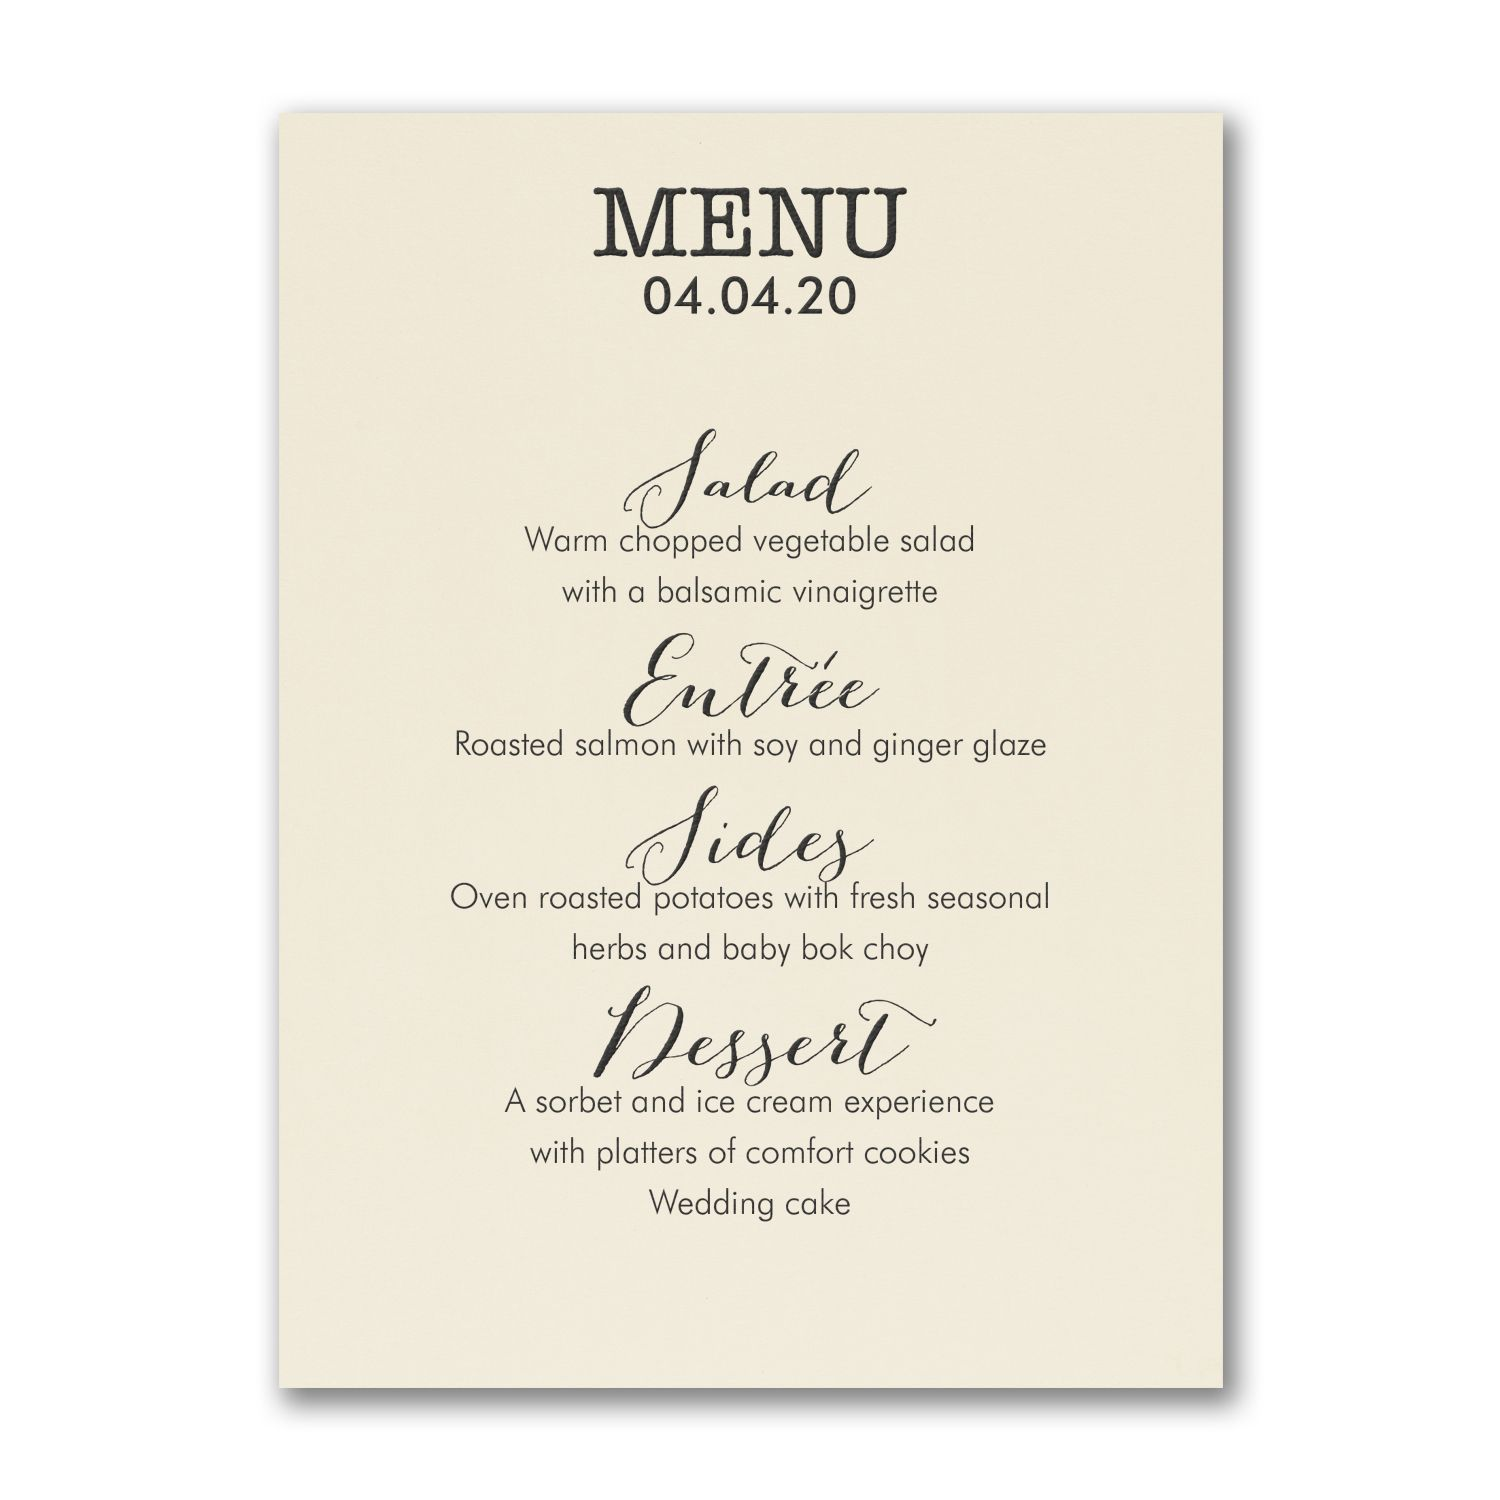 Cuisine Type Menu Card Ecru With Images Menu Cards Menu